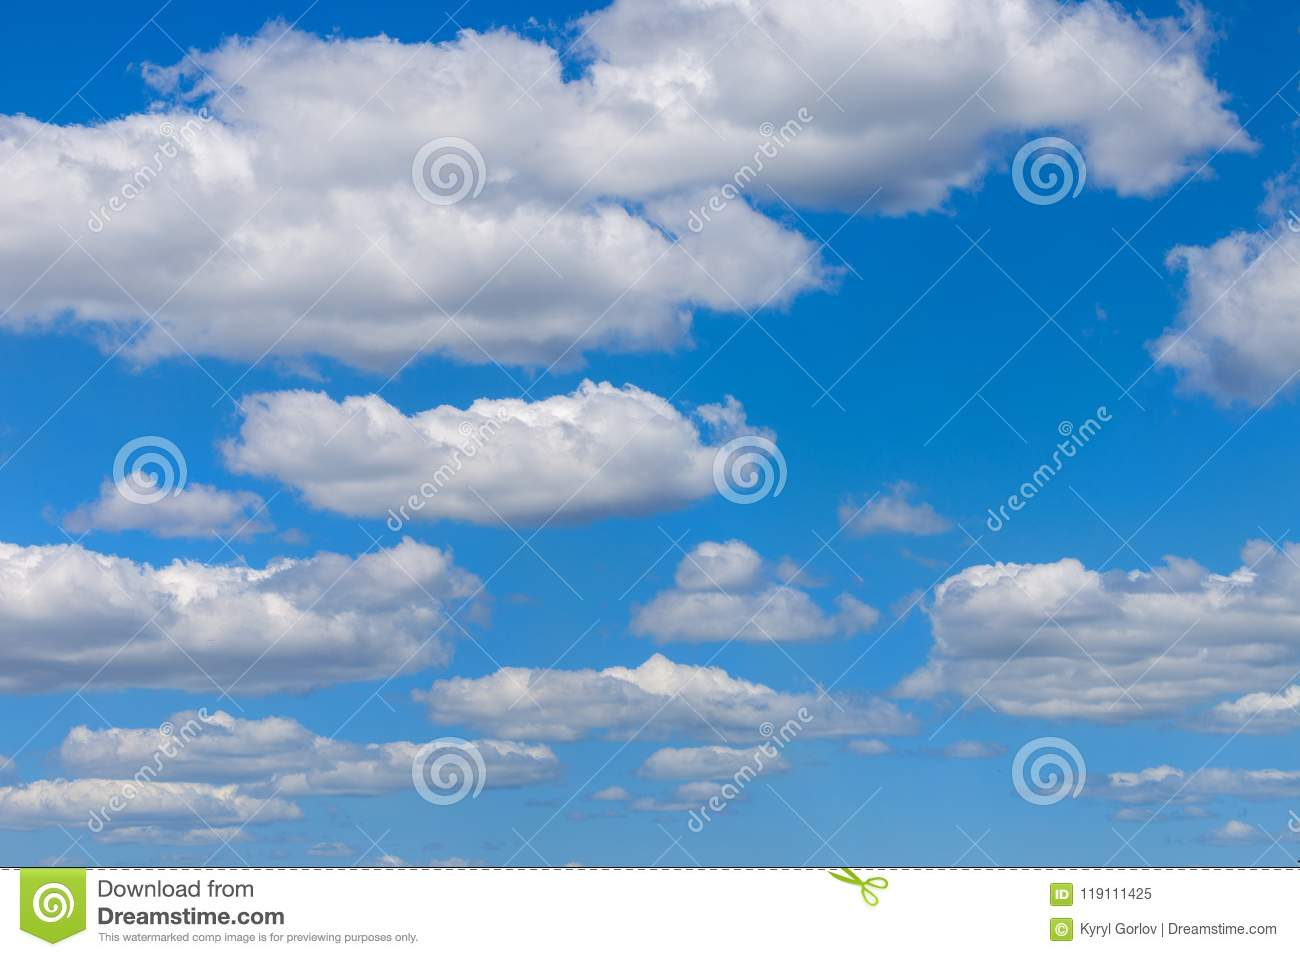 Clear blue sky background with clouds. Vibrant nature scene